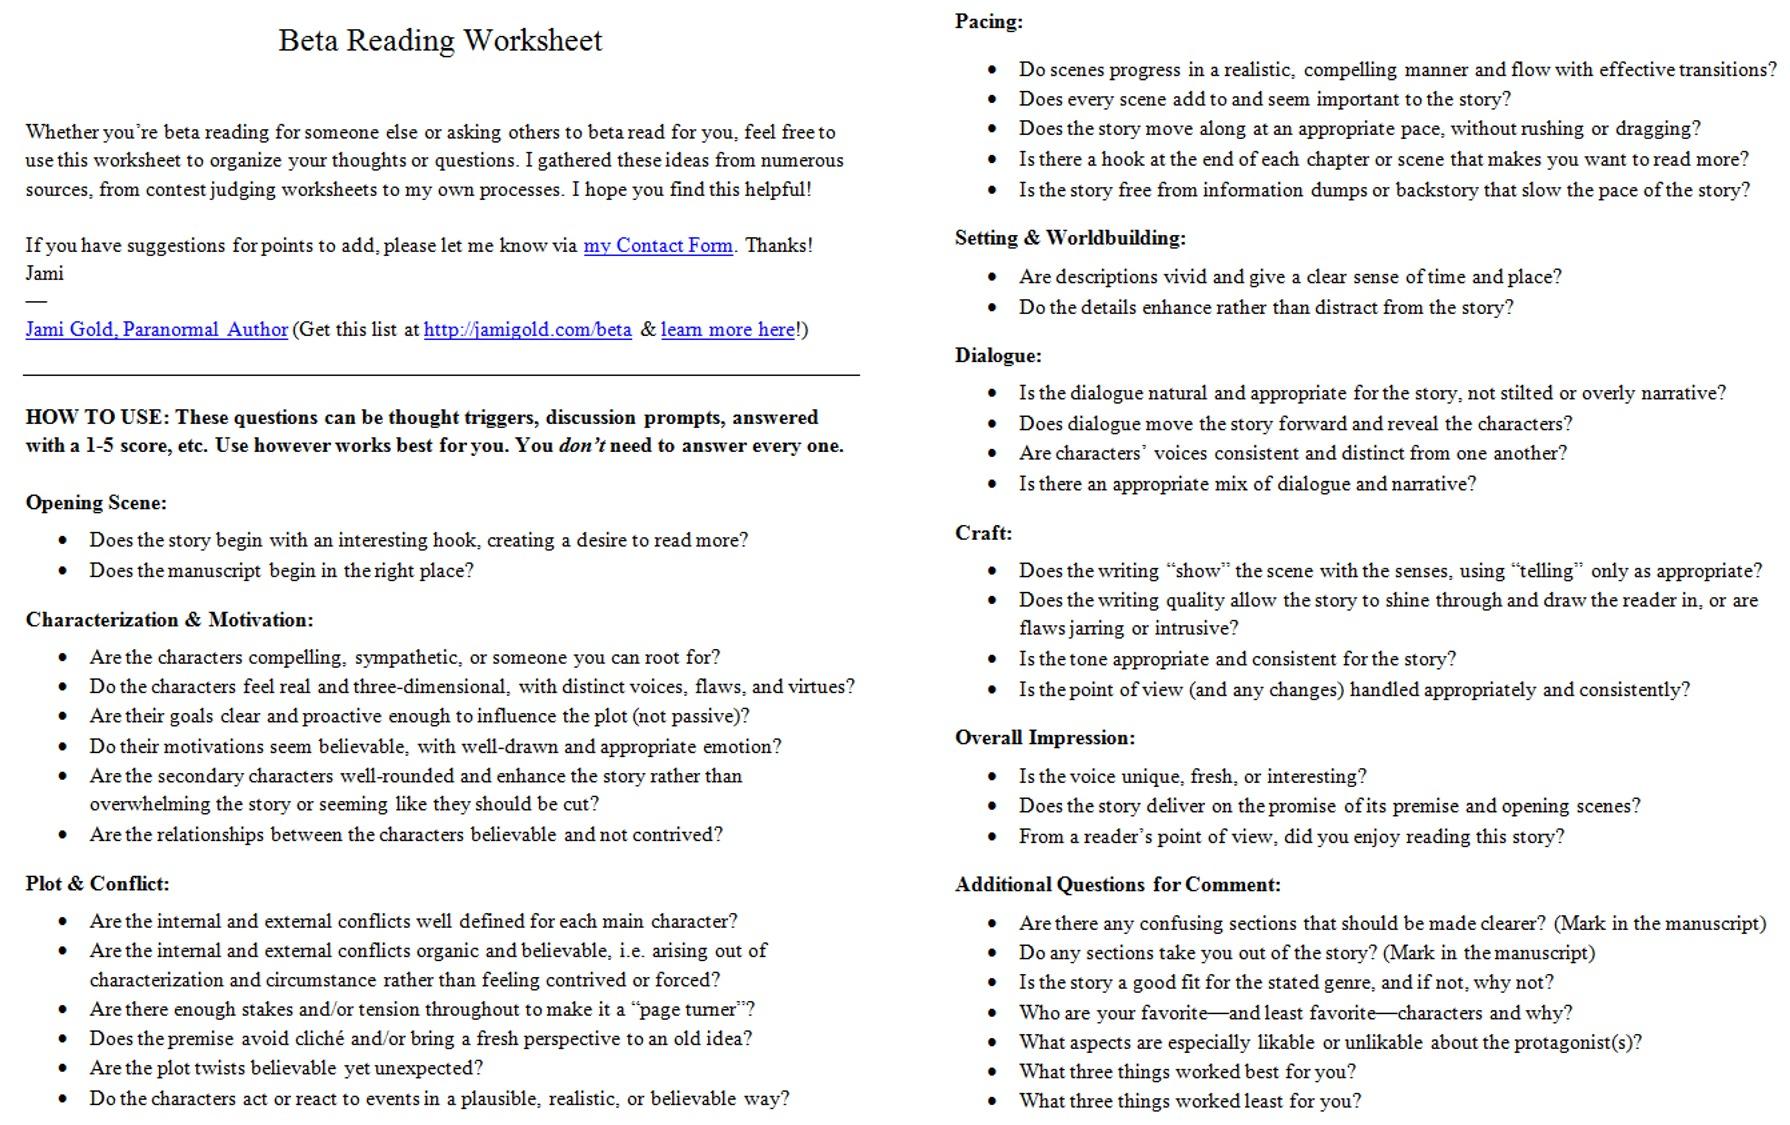 Proatmealus  Unique Worksheets For Writers  Jami Gold Paranormal Author With Engaging Screen Shot Of The Twopage Beta Reading Worksheet With Amusing Action Words For Kids Worksheet Also Fraction Practice Worksheets With Answers In Addition Worksheets On Slope Intercept Form And Find The Odd One Out Worksheets As Well As Vowel E Worksheets Additionally Worksheets On Homographs From Jamigoldcom With Proatmealus  Engaging Worksheets For Writers  Jami Gold Paranormal Author With Amusing Screen Shot Of The Twopage Beta Reading Worksheet And Unique Action Words For Kids Worksheet Also Fraction Practice Worksheets With Answers In Addition Worksheets On Slope Intercept Form From Jamigoldcom